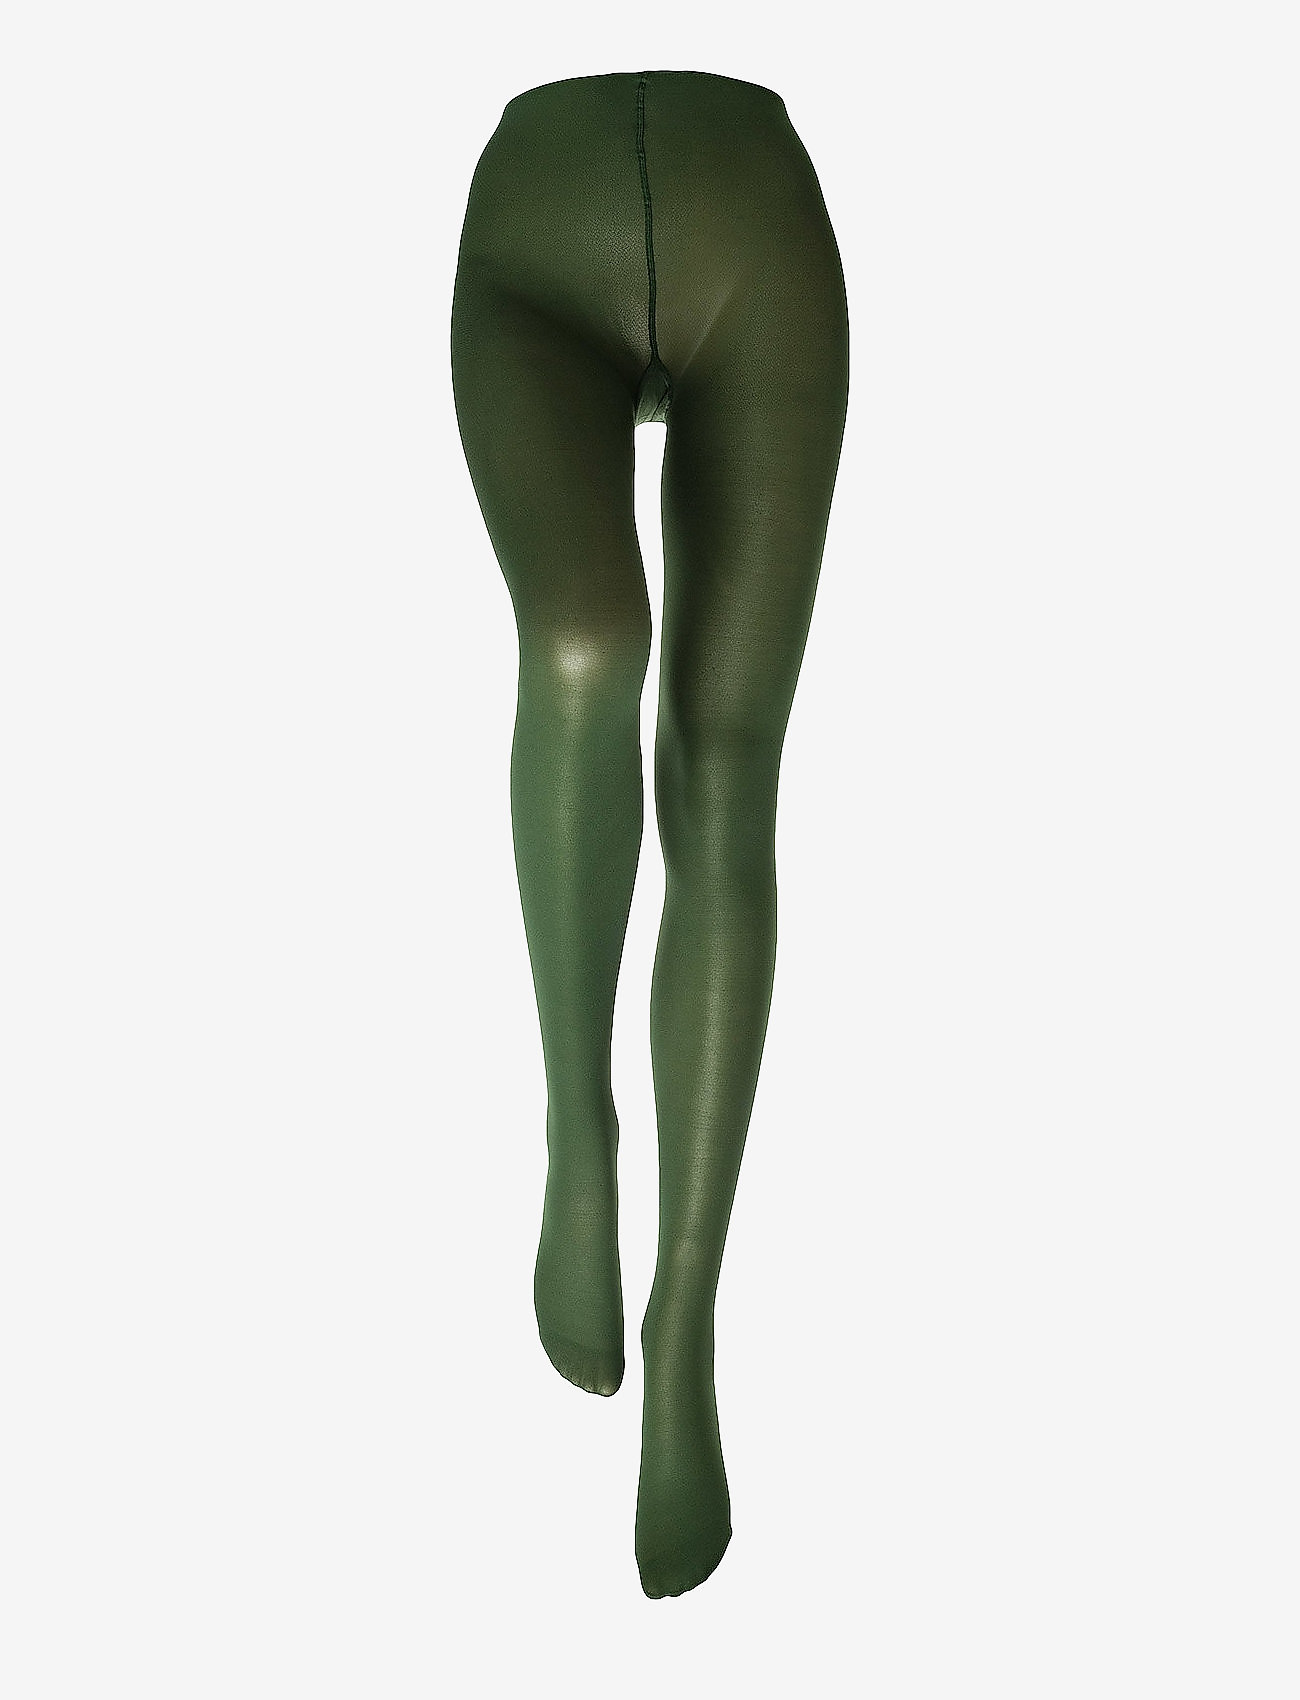 Vogue - Ladies den pantyhose, Opaque 40 den - basic - green - 1